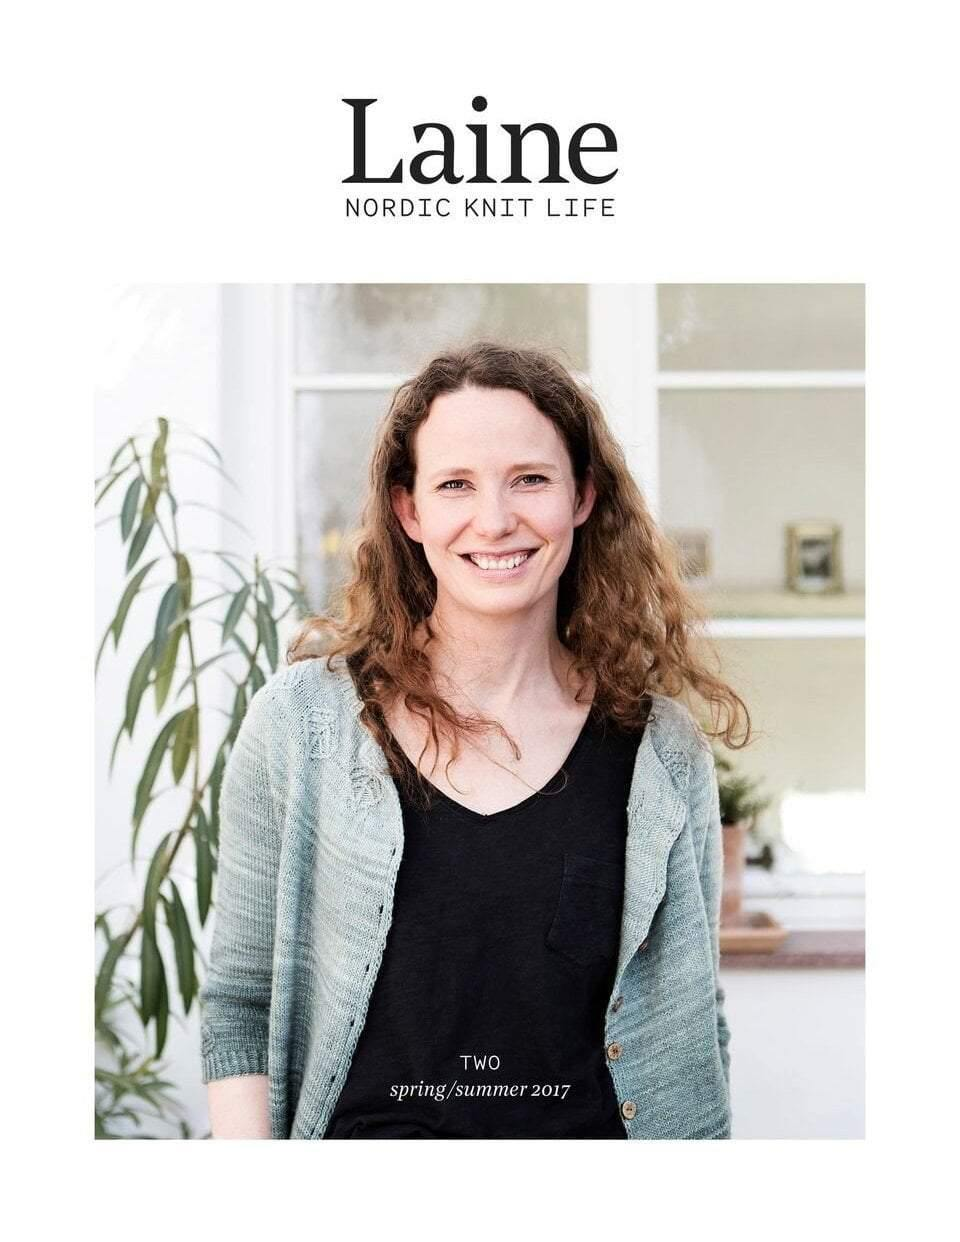 Laine Magazine - Issue 2 Laine Magazine